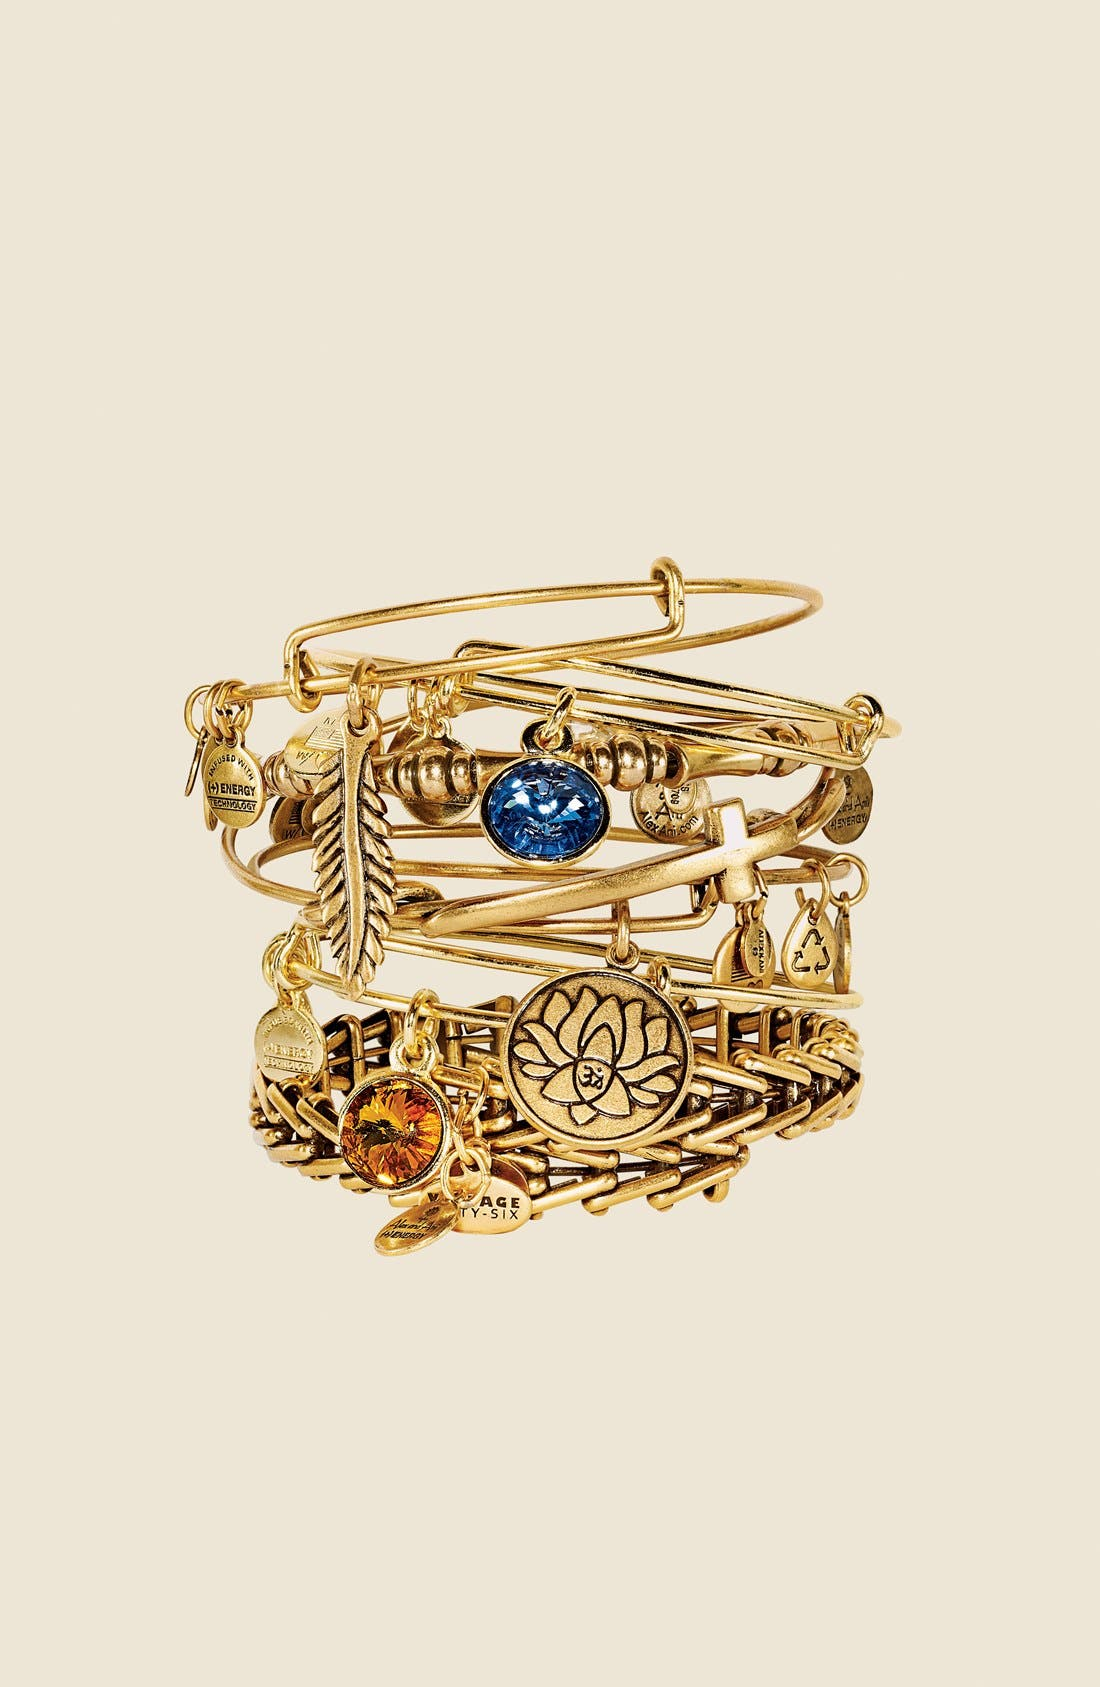 Alex and Ani 'Gypsy 66' Wrap Bracelet,                             Alternate thumbnail 5, color,                             040